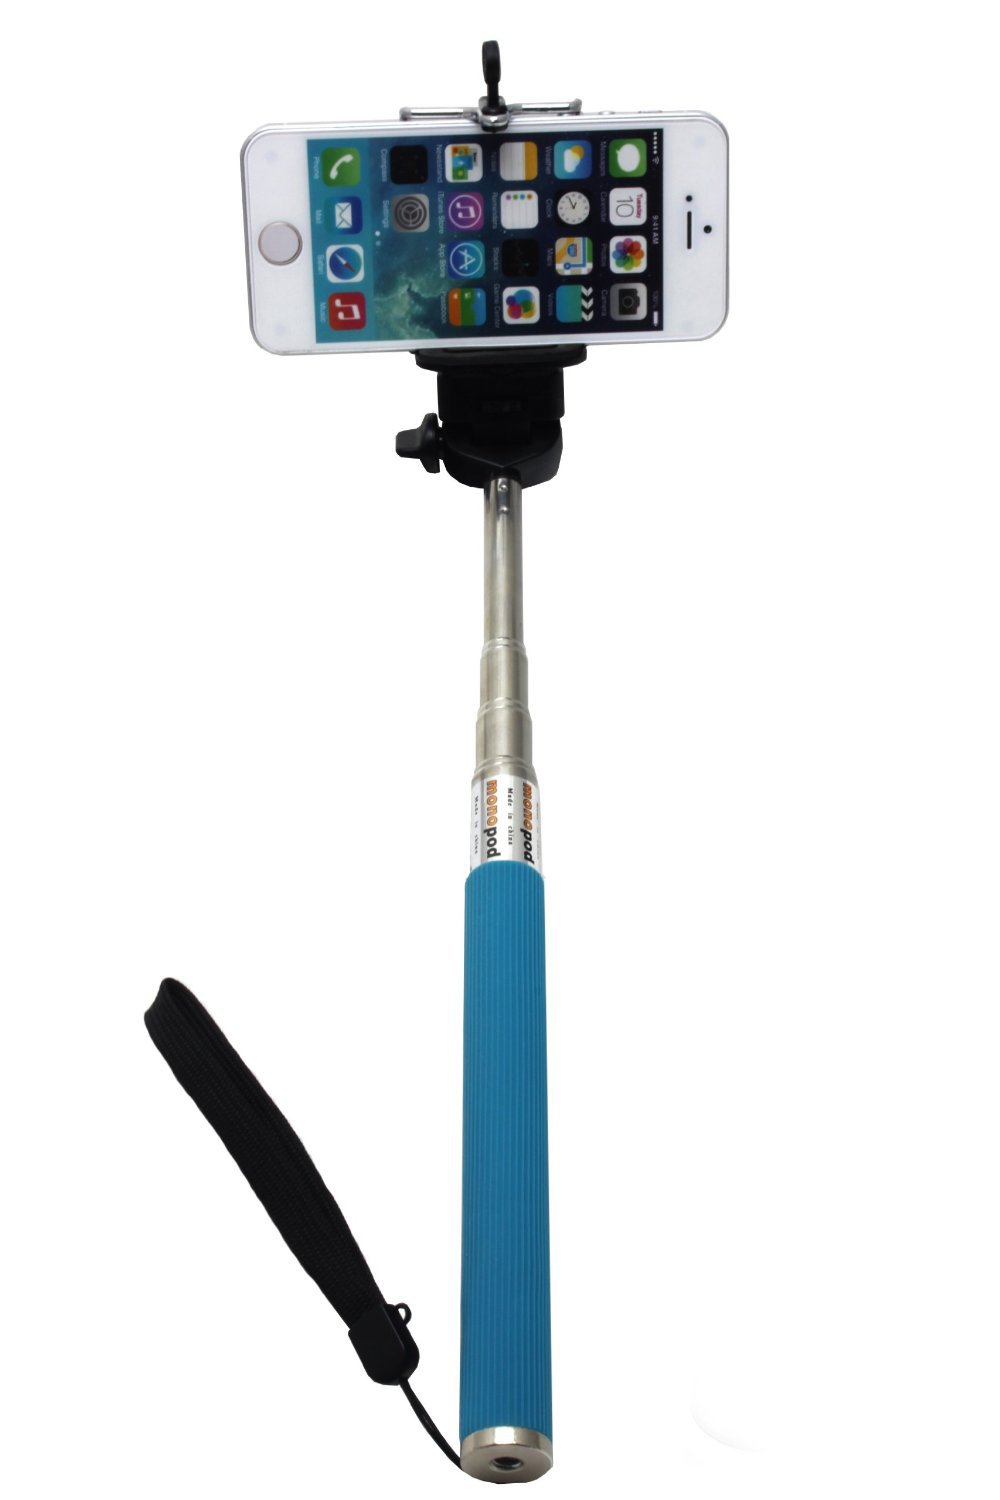 New Selfie stick + handset border blue Mobile Phone Holders & Stands for Iphone and Samsung(China (Mainland))